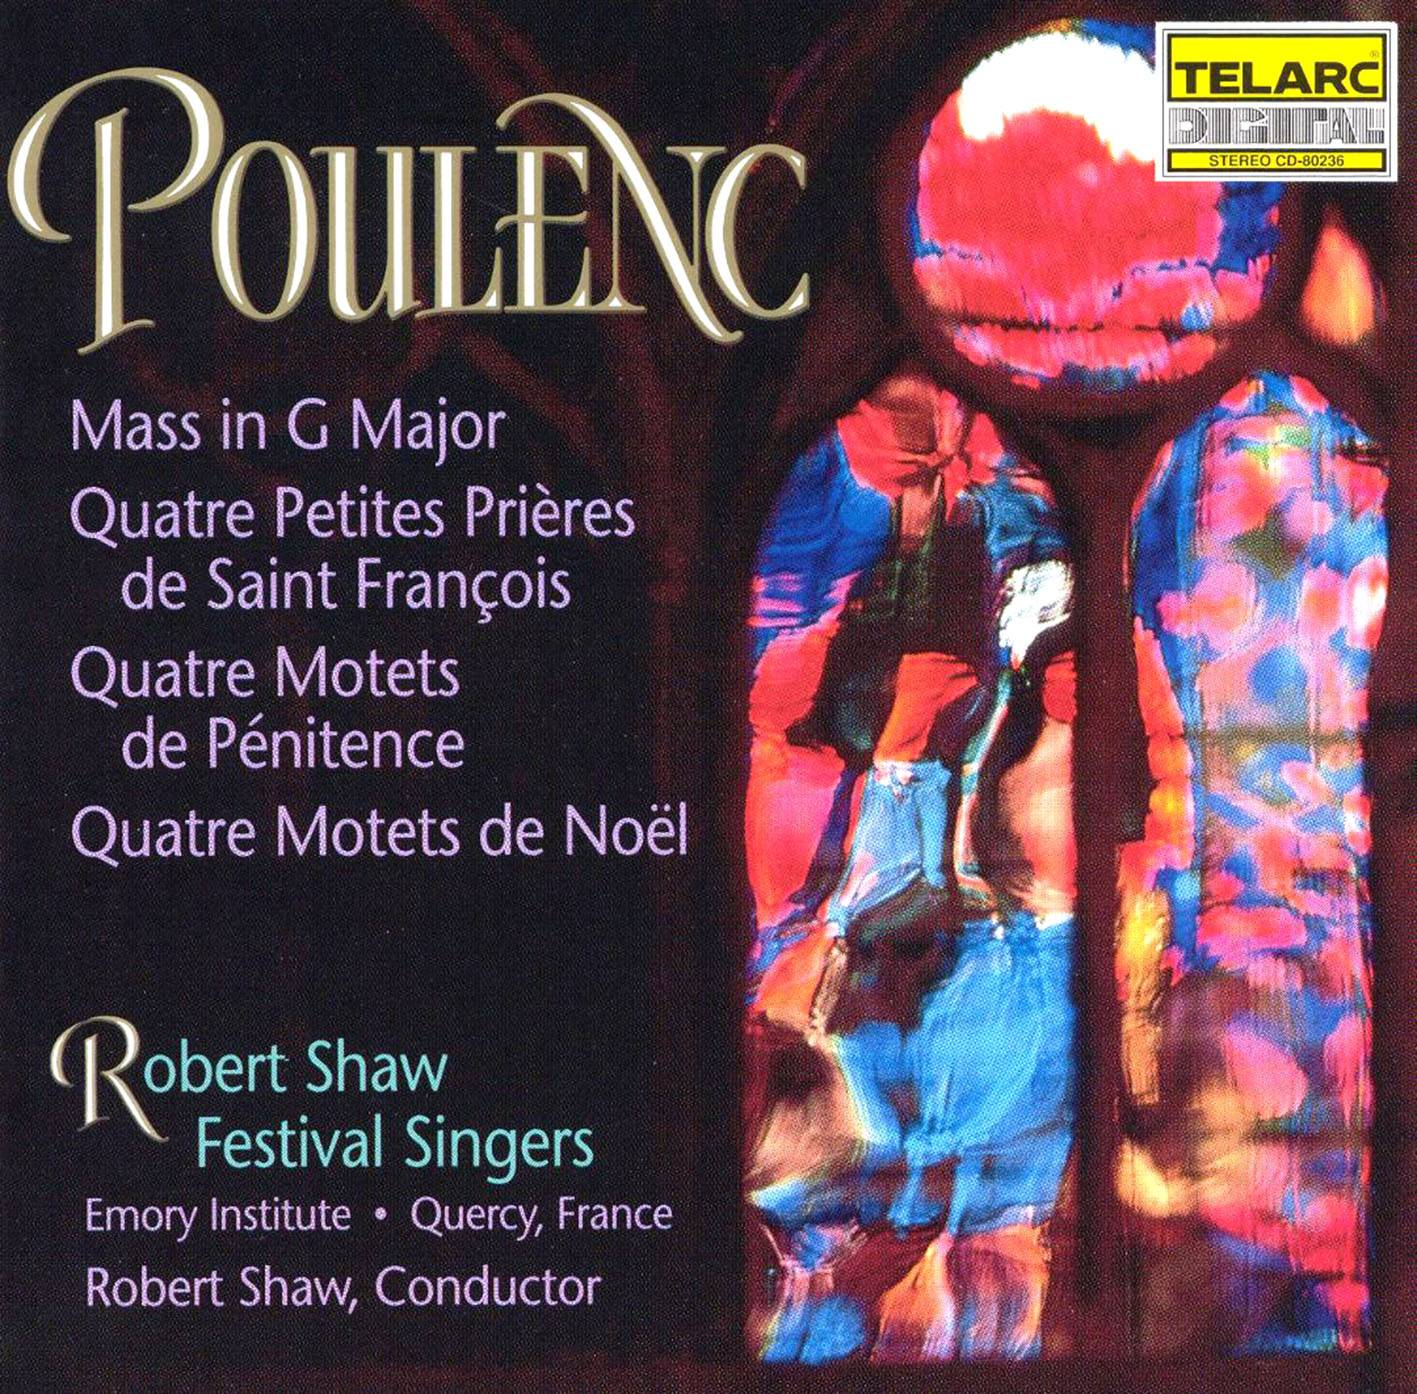 Robert Shaw Festival Singers - Francis Poulenc: Mass In G Major; Motets For Christmas And Lent (1990)